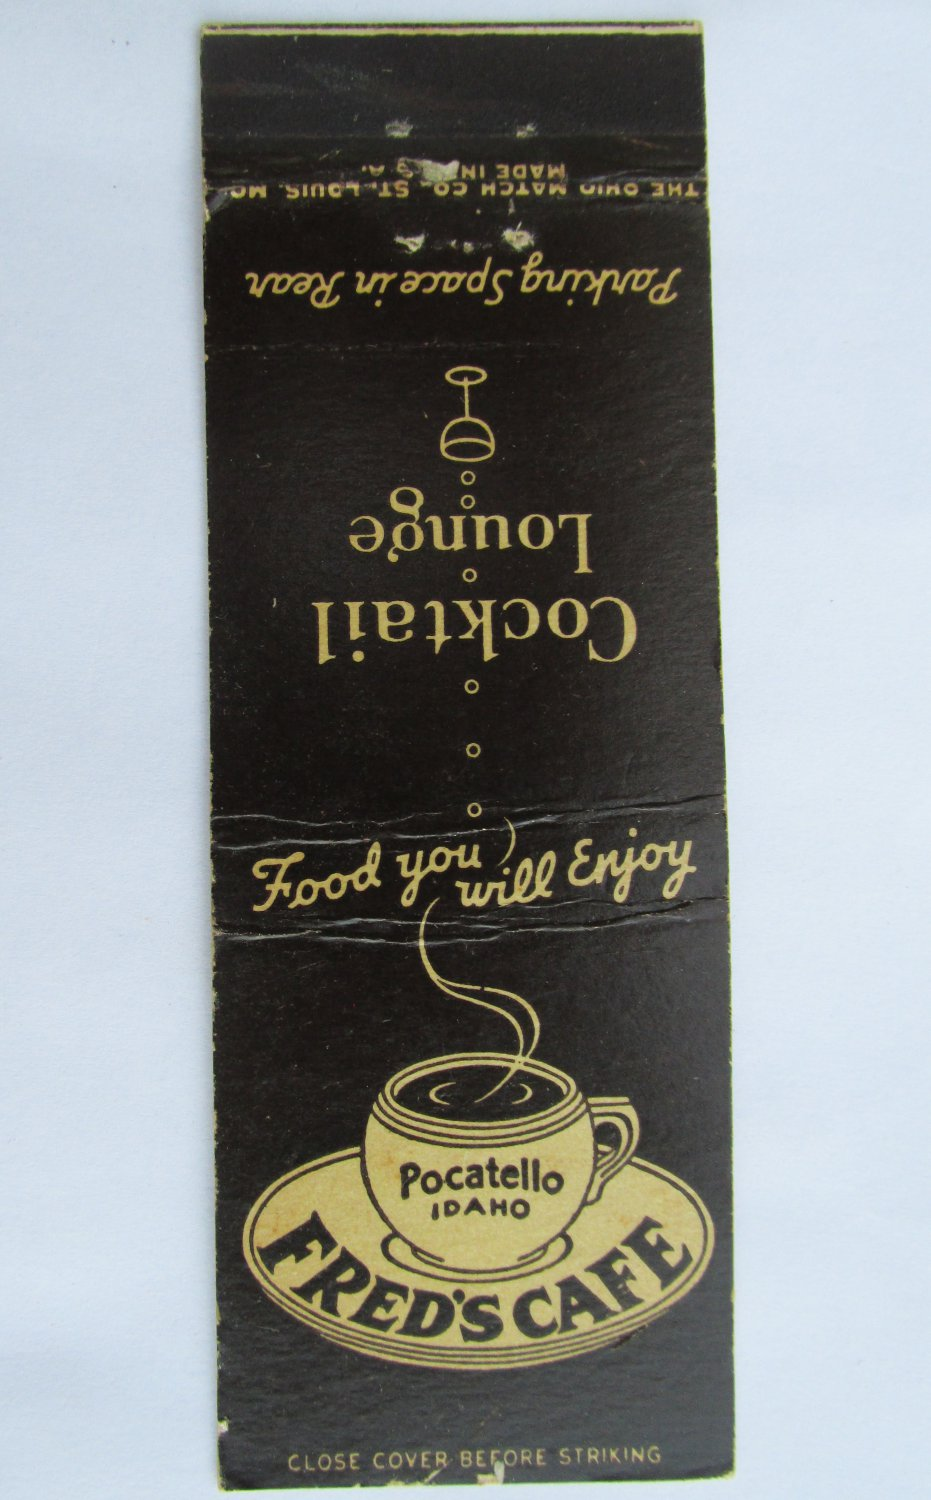 Fred's Cafe Pocatello Idaho 20 Strike Restaurant Coctail Lounge Matchbook Cover